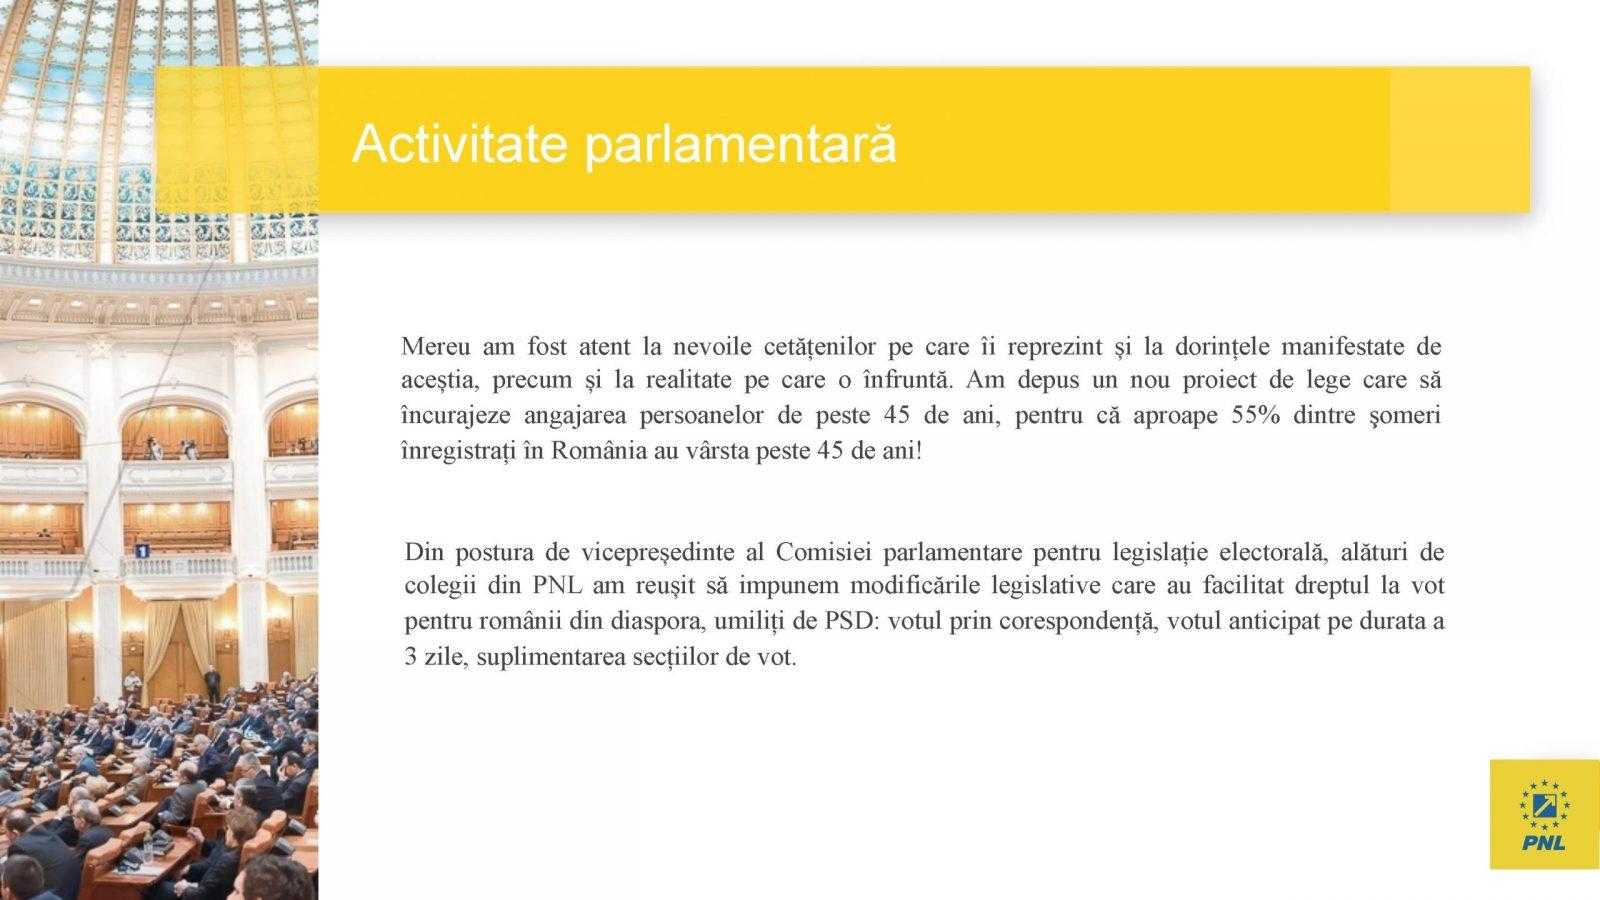 raport de activitate laurentiu leoreanu Page 07 scaled